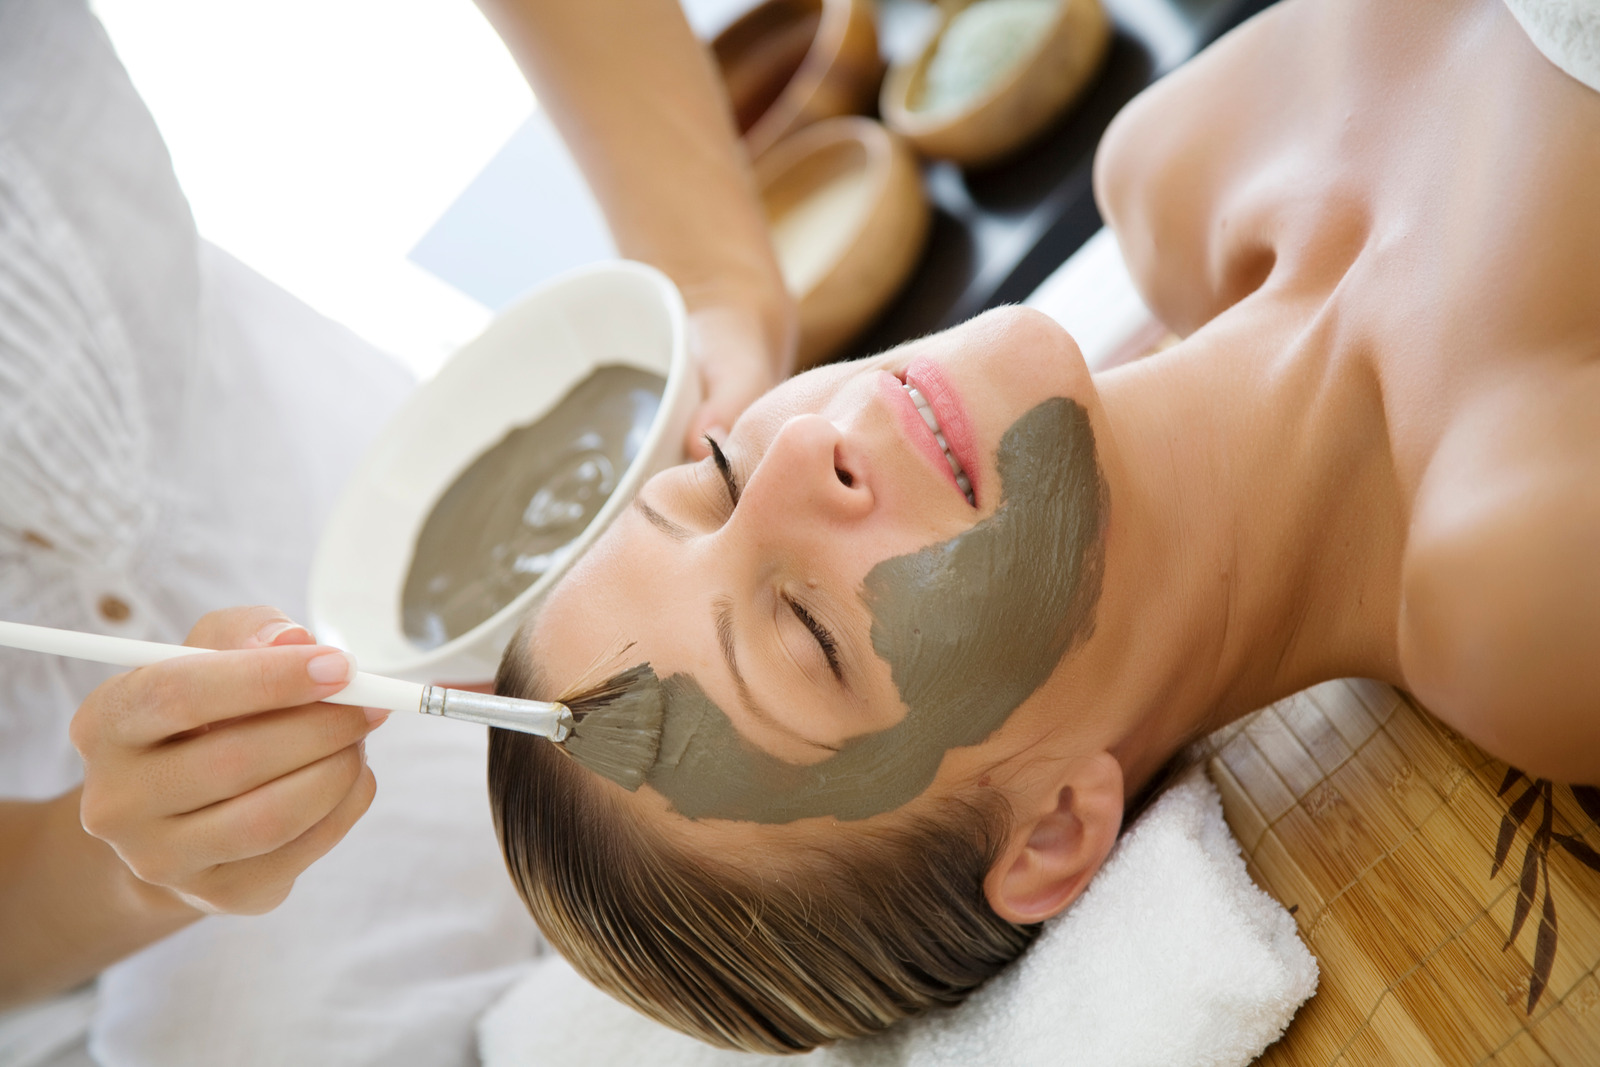 professional applyinh mud mask to female client